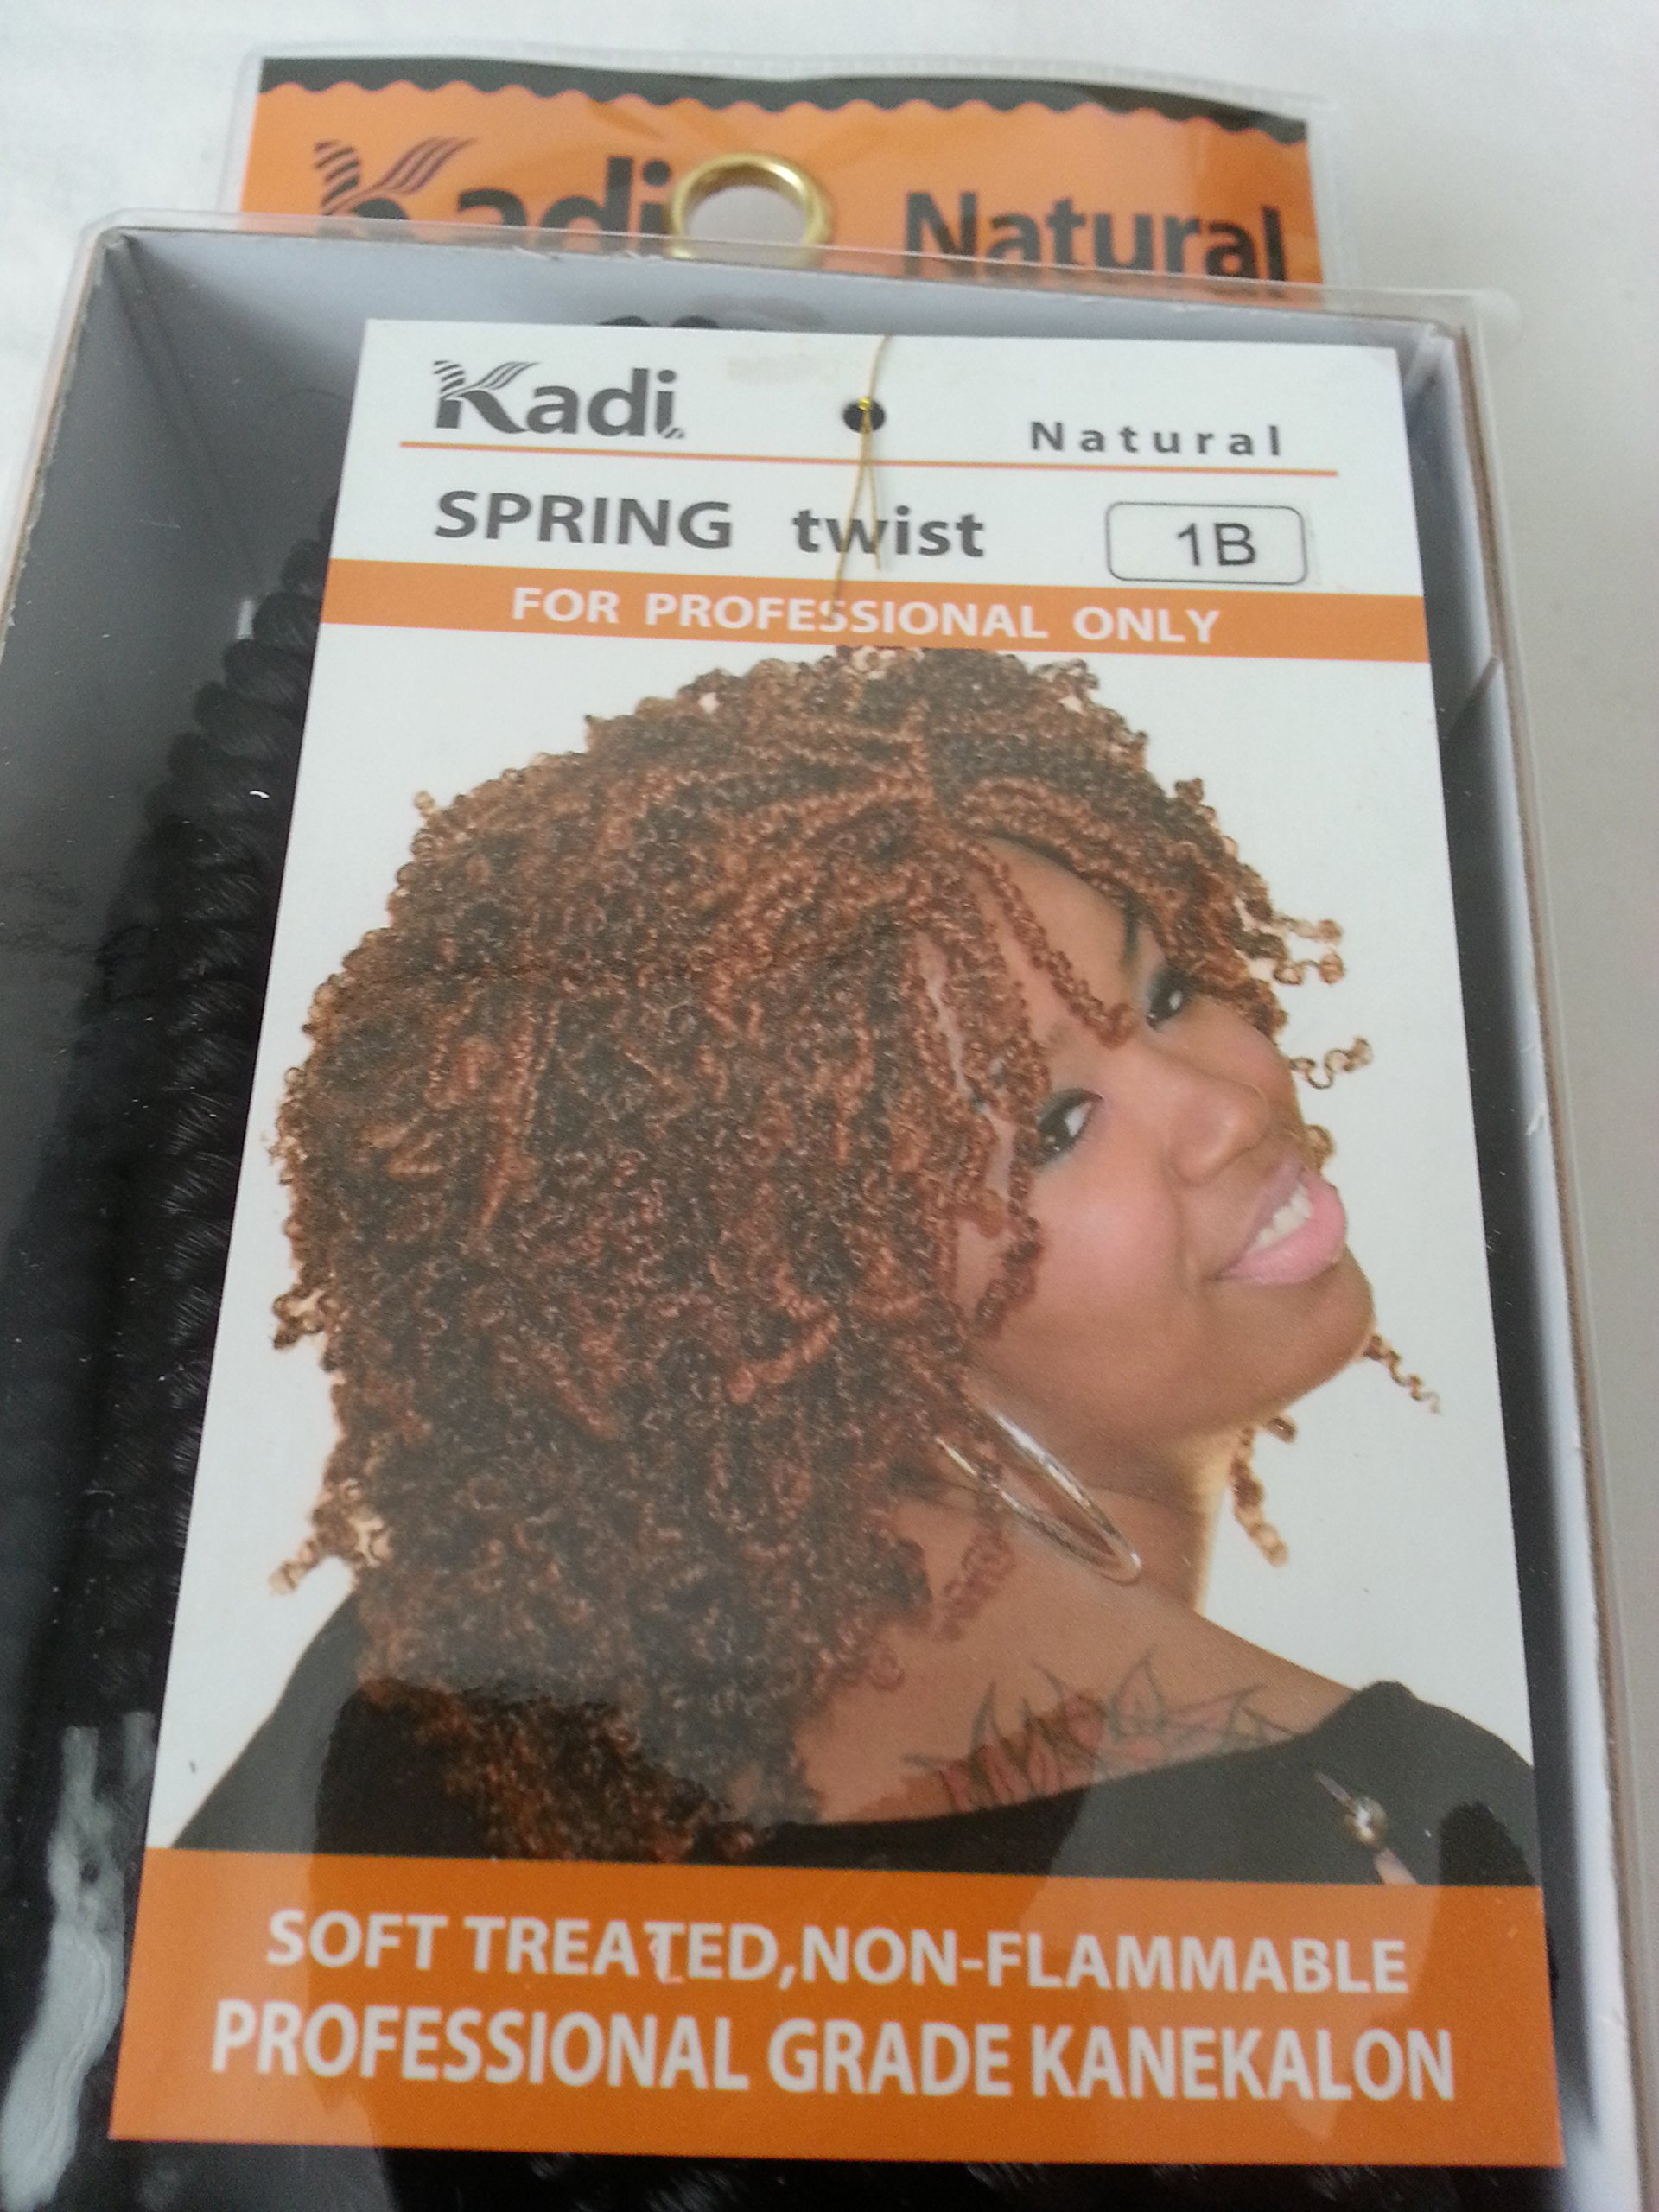 Kadi Natural Braiding Style, Hair Extension, Professional Grade Kanekalon (1B - Off Black, SPRING TWIST) by Kadi Natural (Image #2)